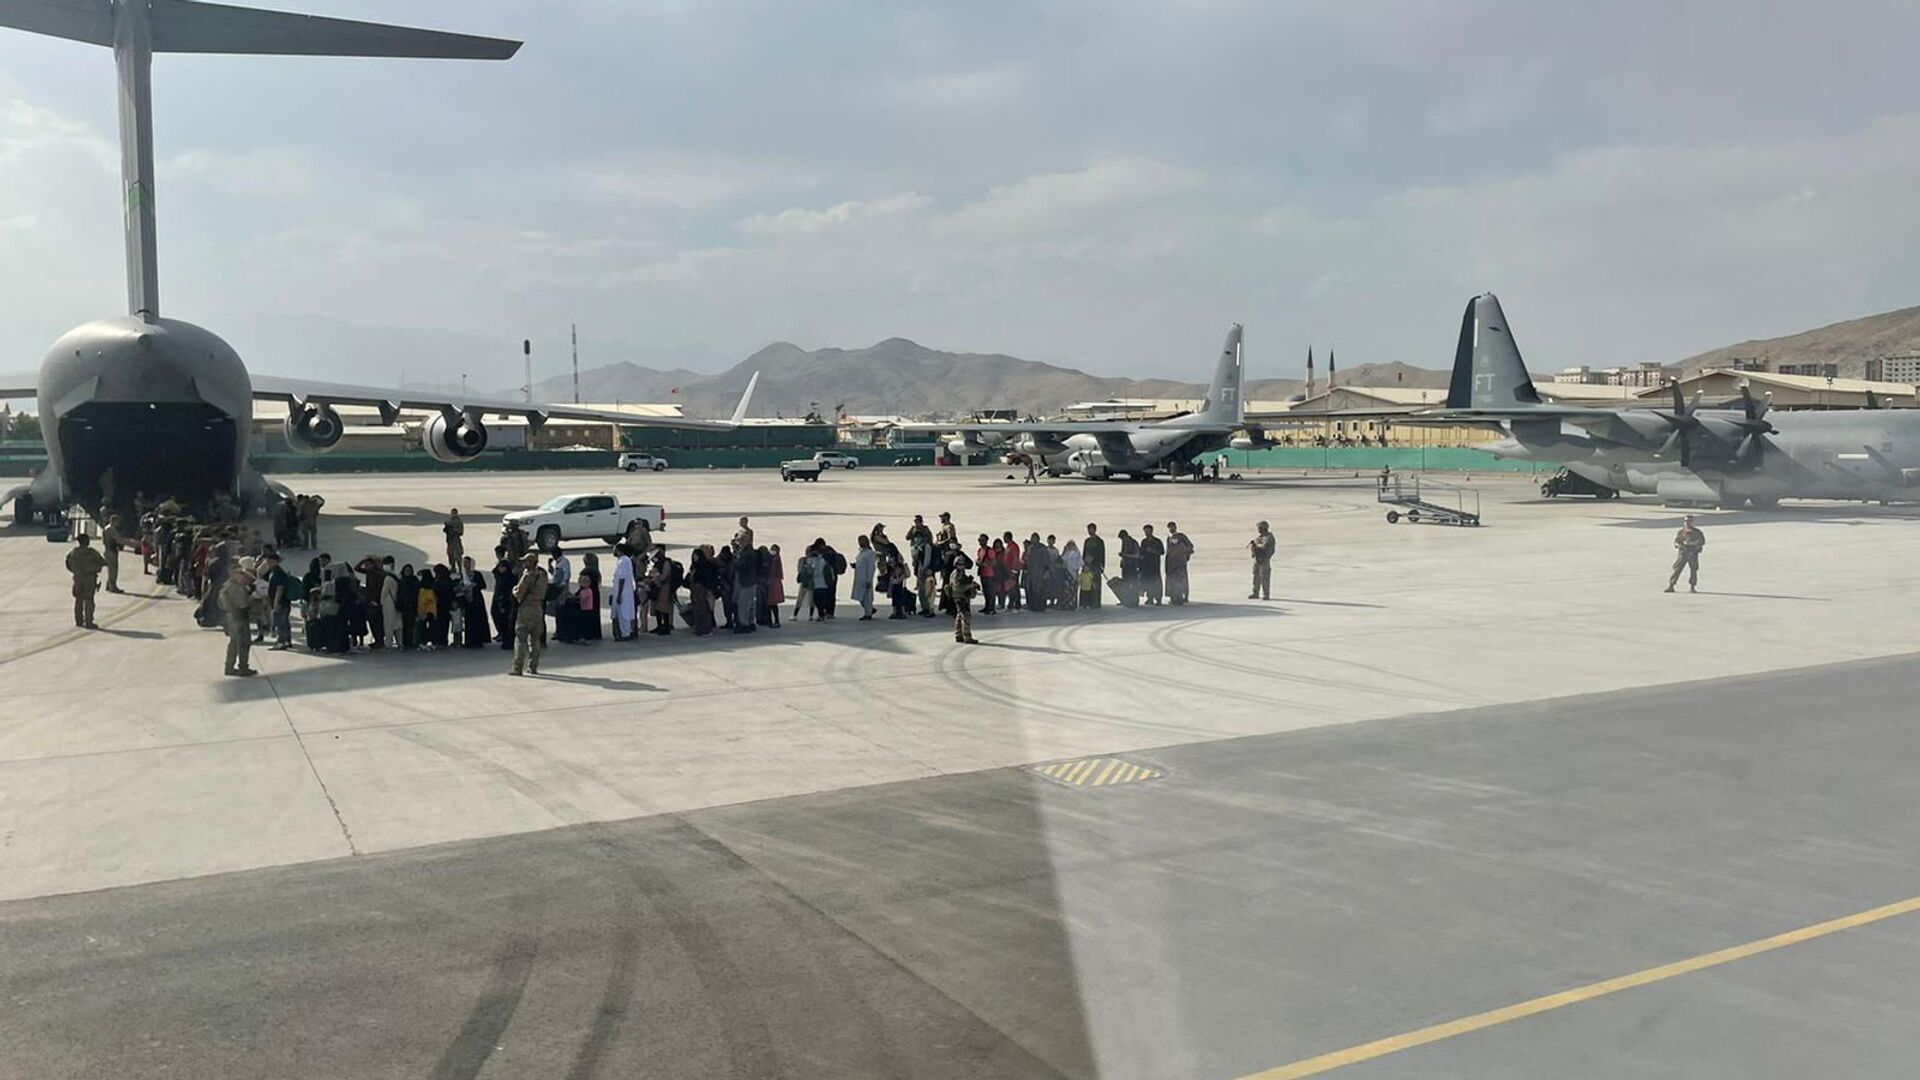 Afghan evacuees queue before boarding one of the last of Italy's military aircraft C130J during evacuation at Kabul's airport, Afghanistan on 27 August 2021. - Sputnik International, 1920, 04.09.2021